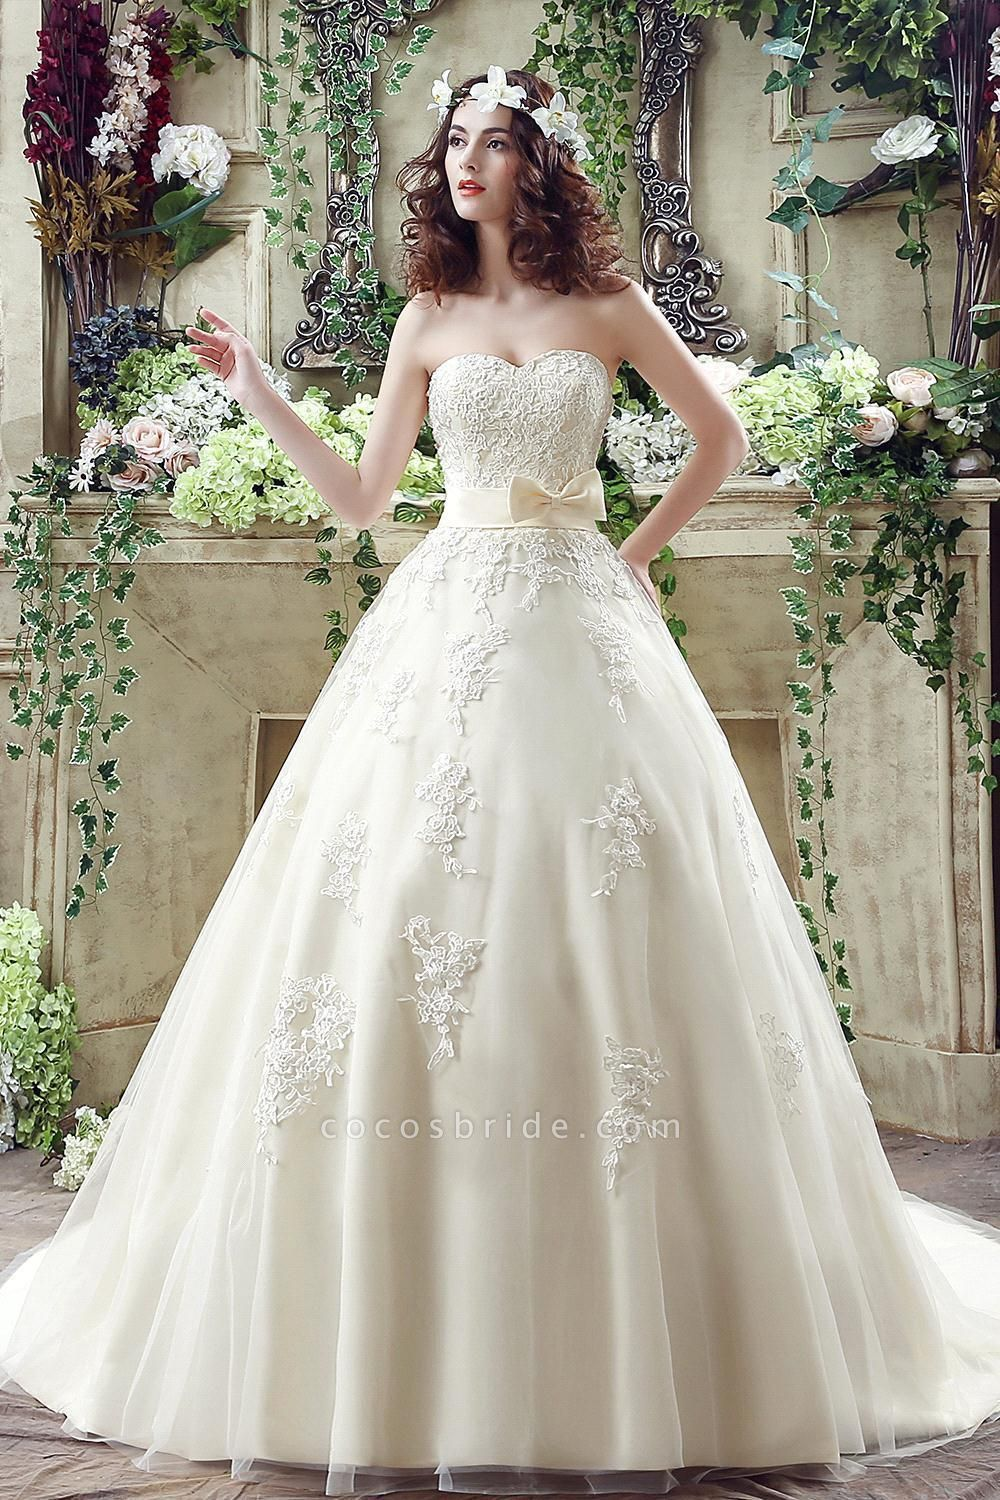 Sweetheart Strapless Lace Appliques Wedding Dress With Bowknot